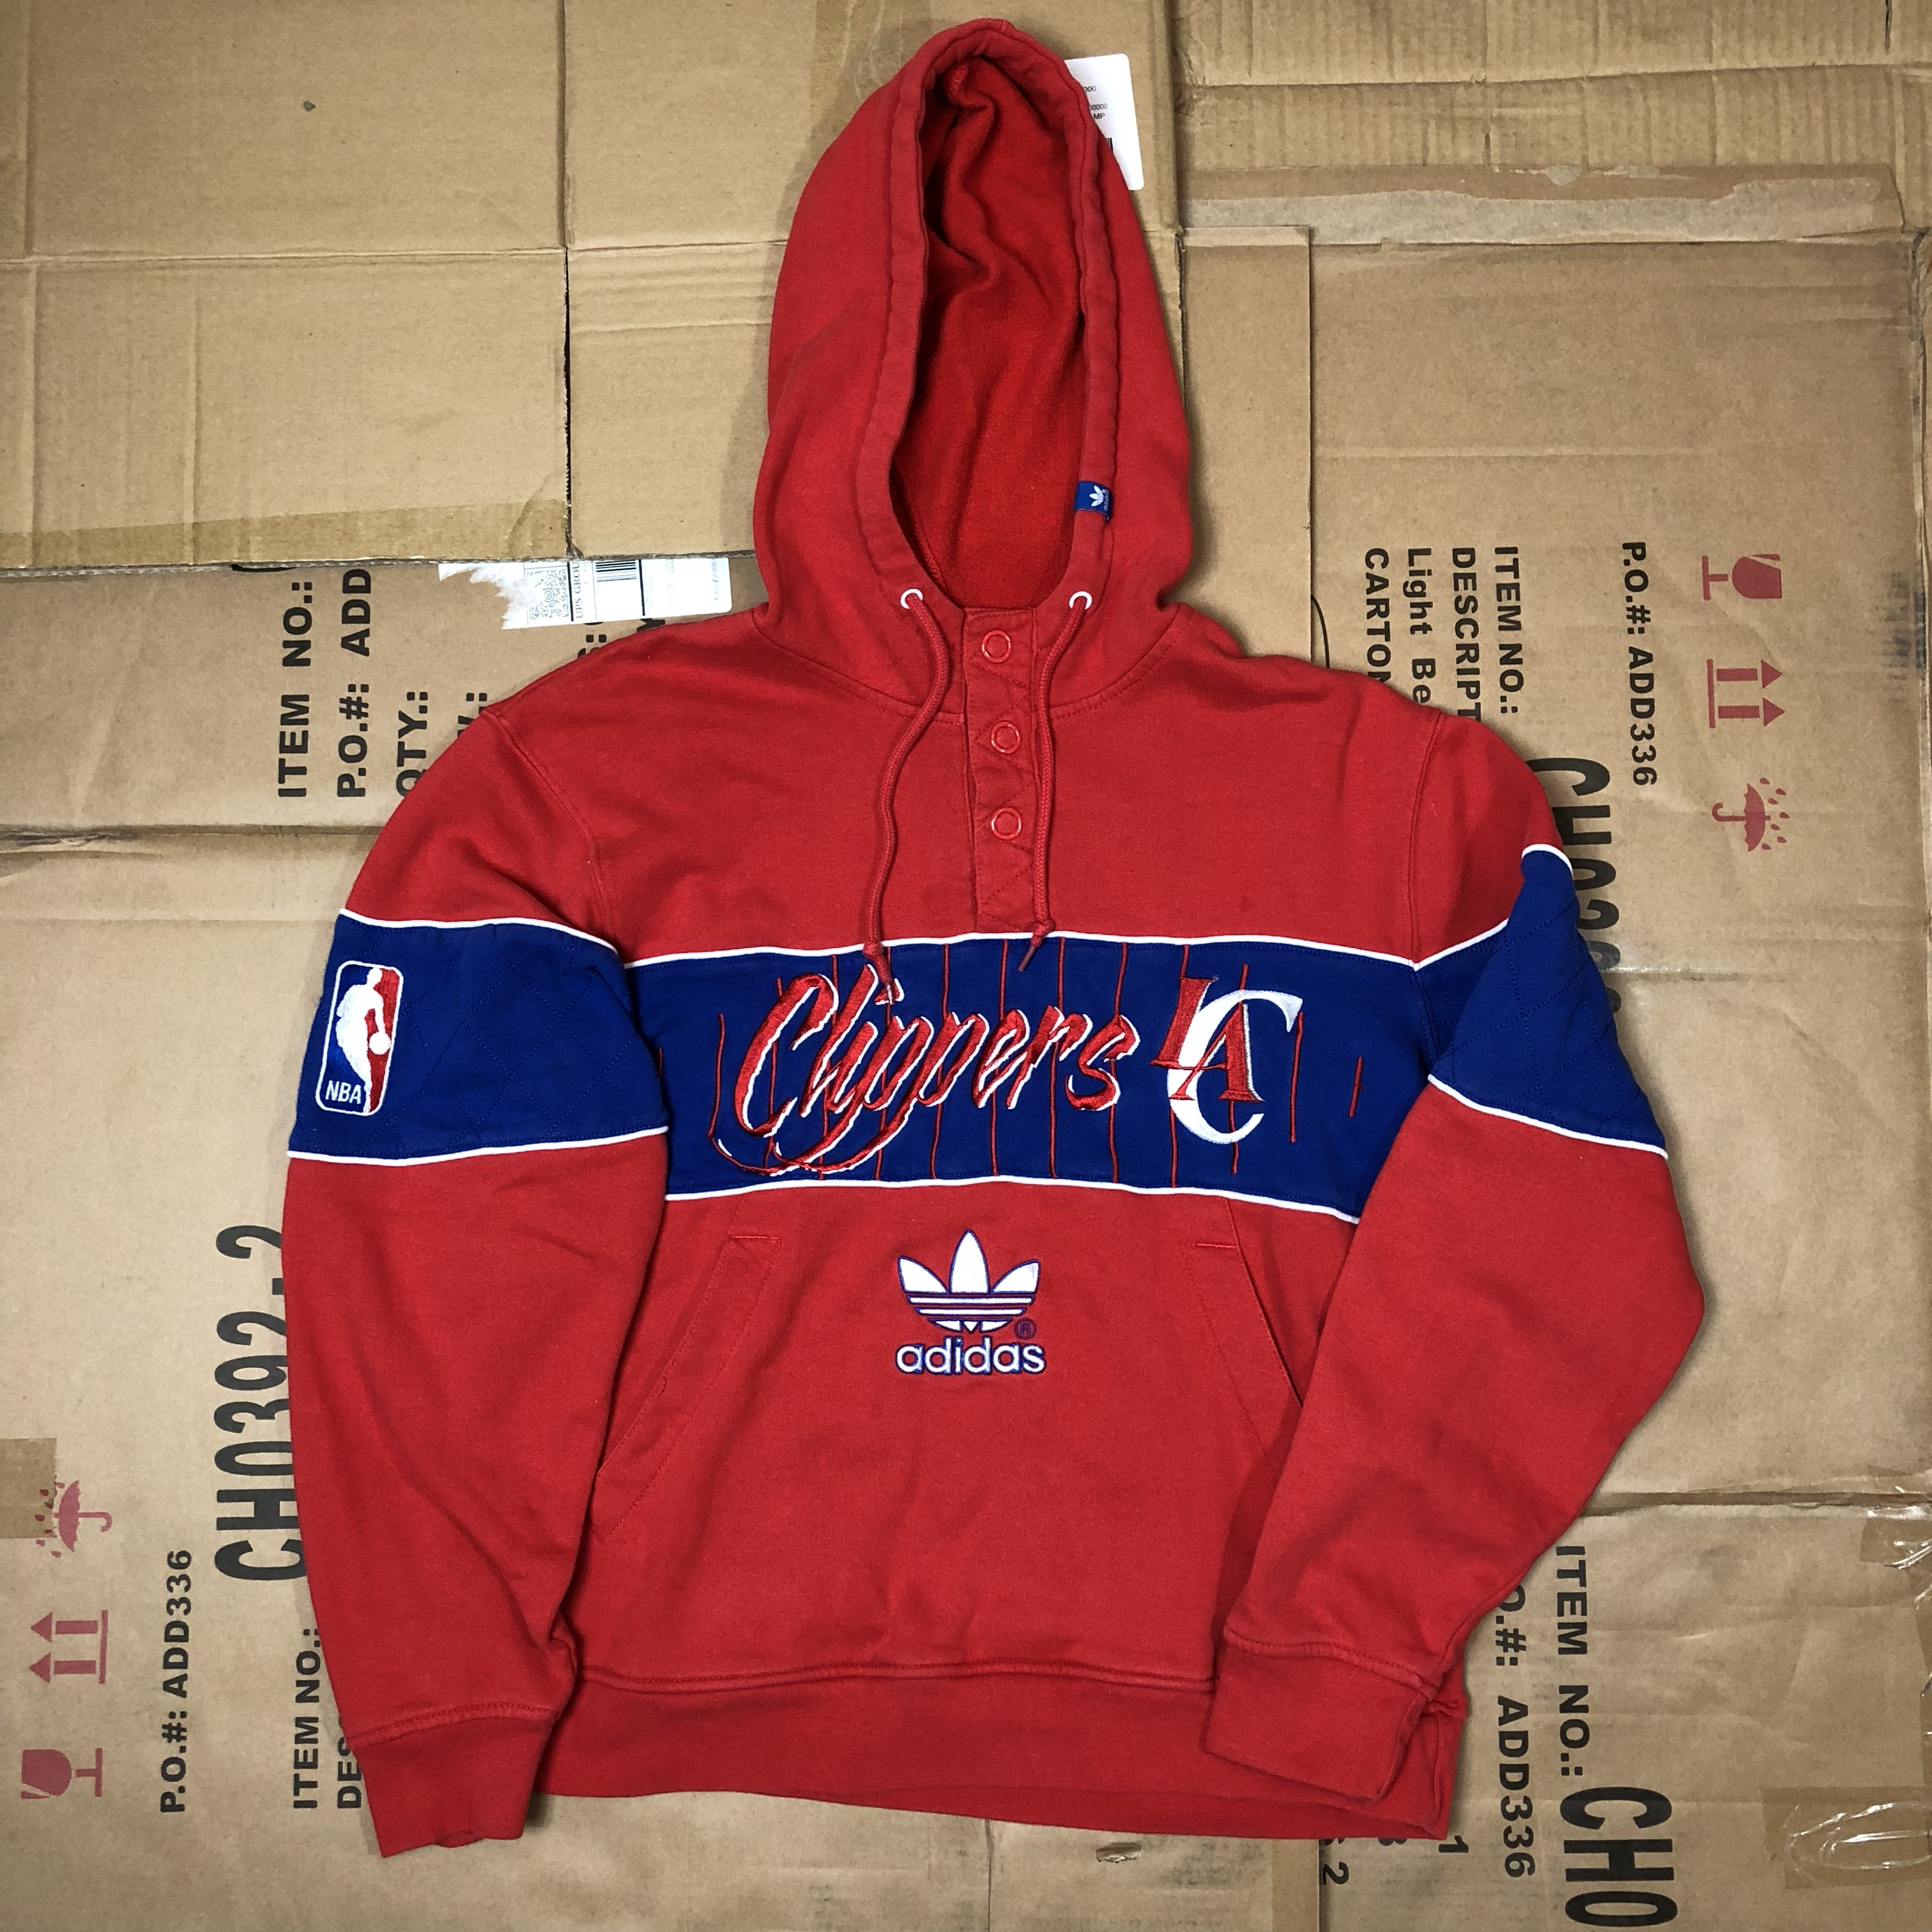 Clippers Offers Adidas Hoodie M Nba Size All Depop La R5Ljqc4A3